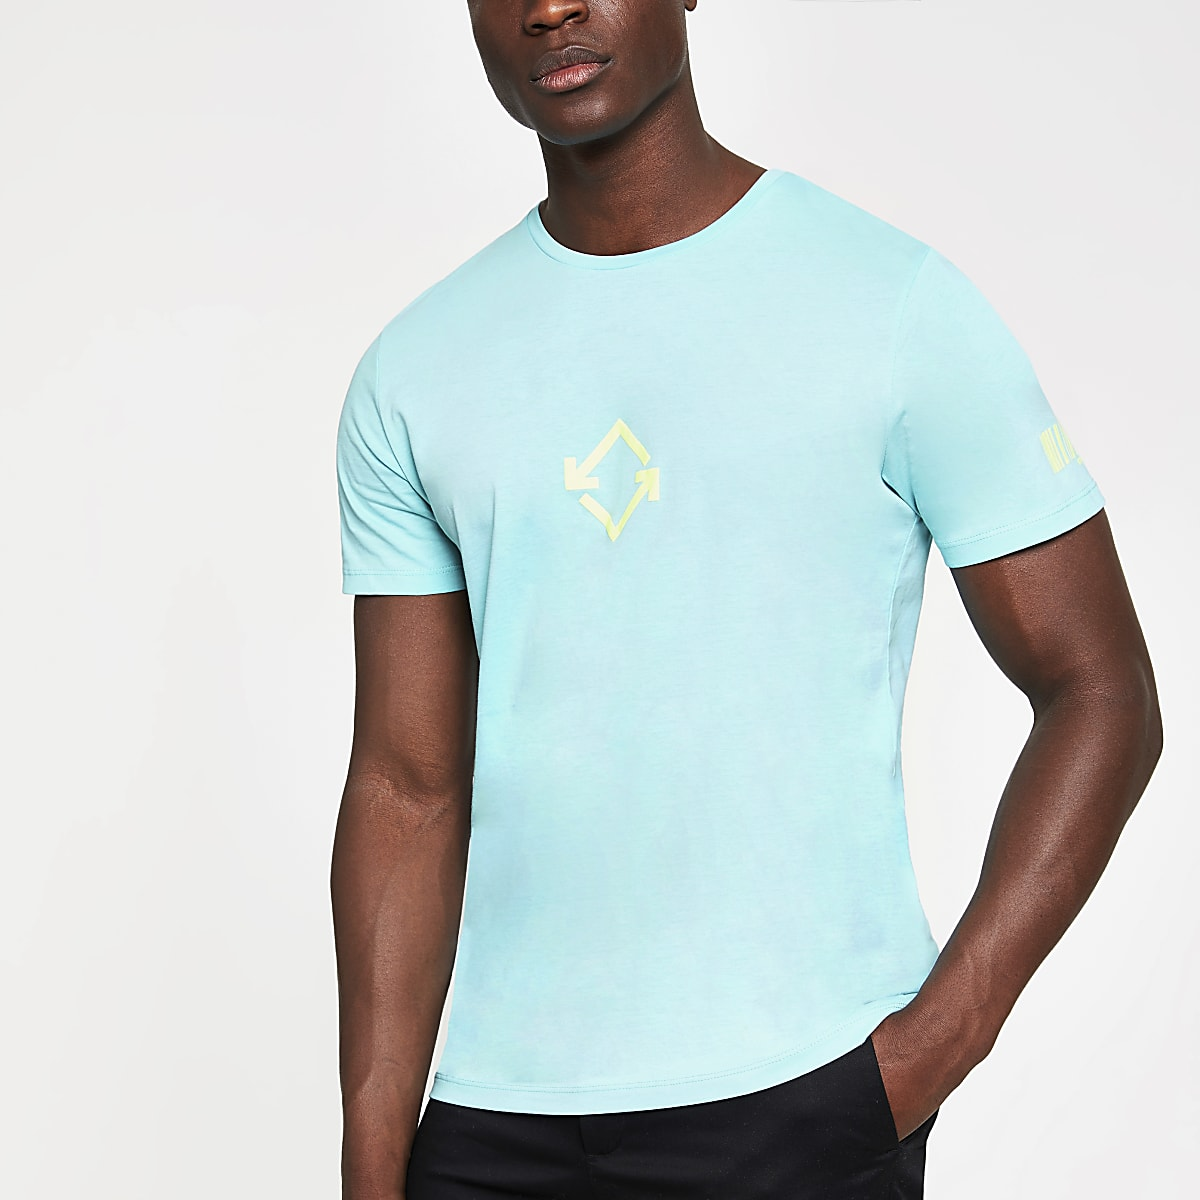 Jack and Jones light blue printed T-shirt